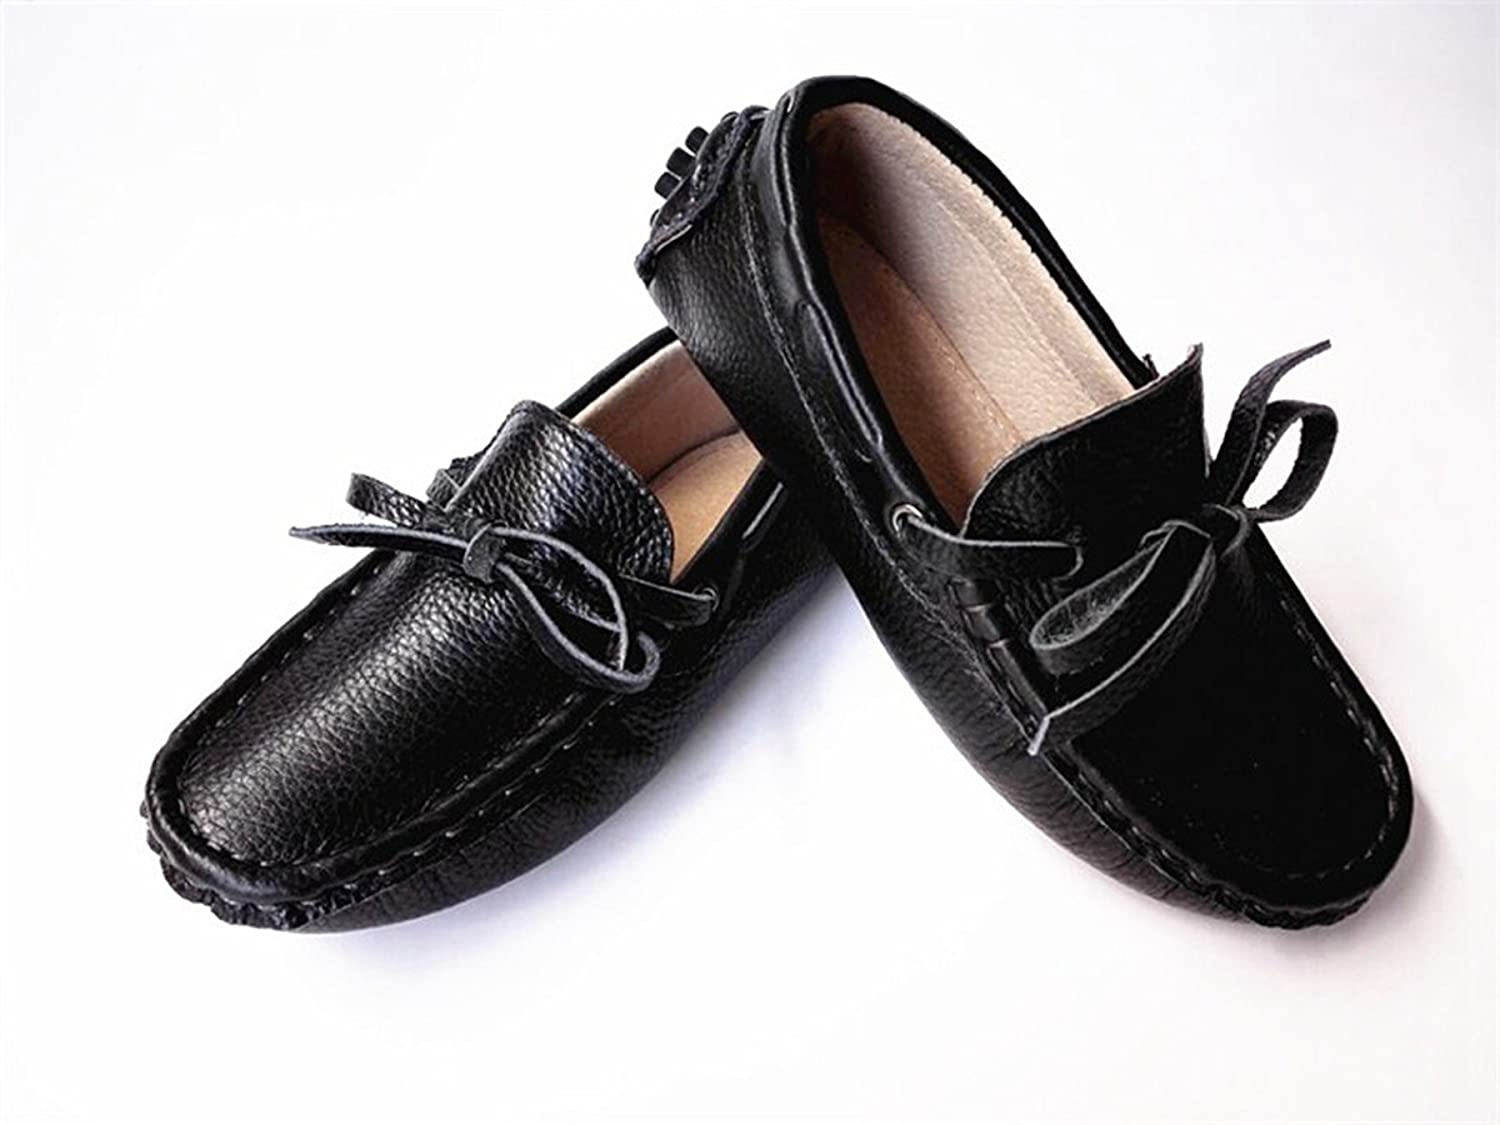 TDA Kids Comfort Lovely Black Leather Boat Shoes Loafers Flats 2 M US